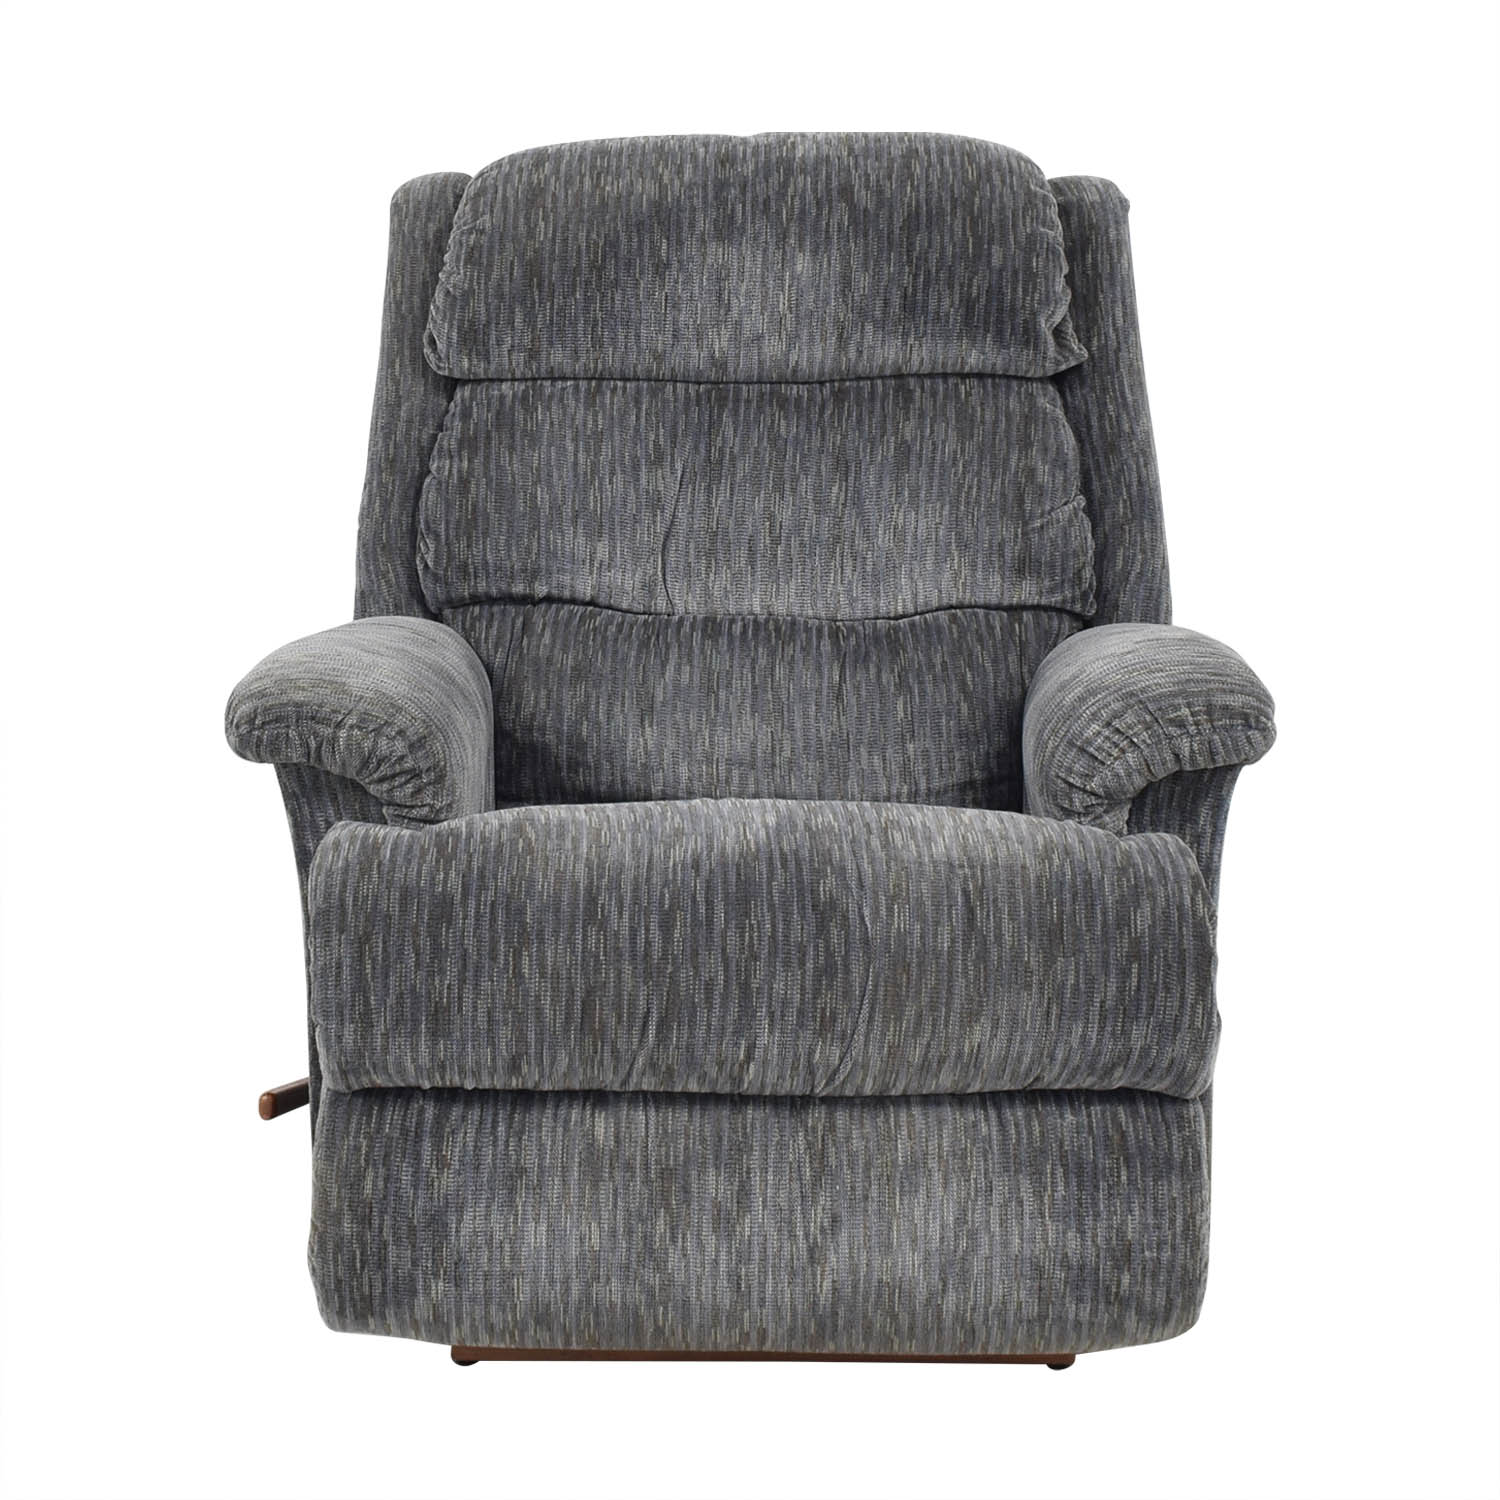 La-Z-Boy La-Z-Boy Overstuffed Recliner Chairs